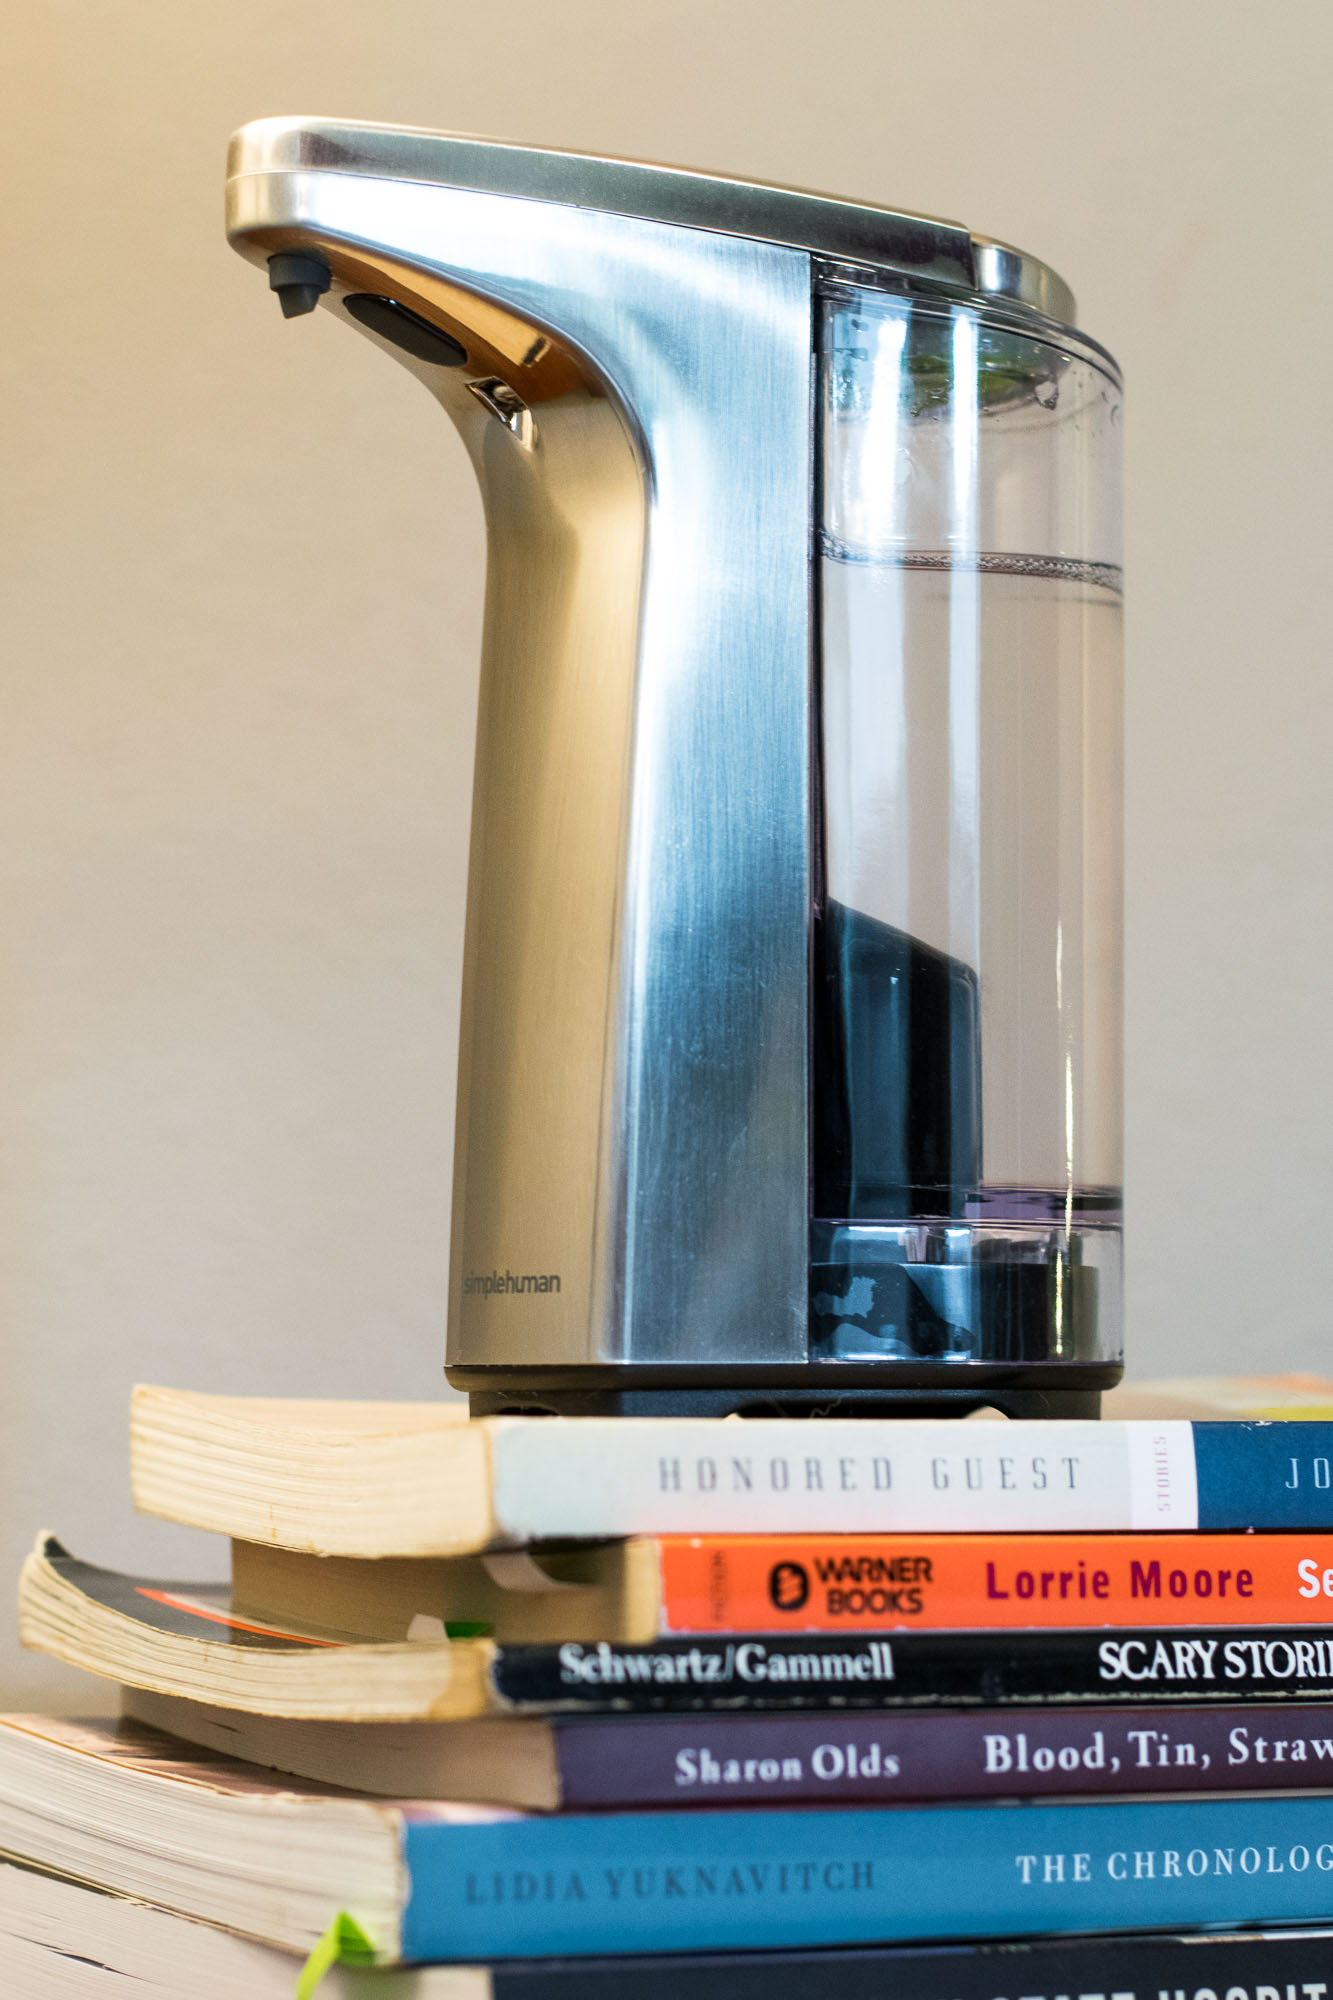 THE KING REIGNS. simplehuman Sensor Pump automatic soap dispenser with lube in it.